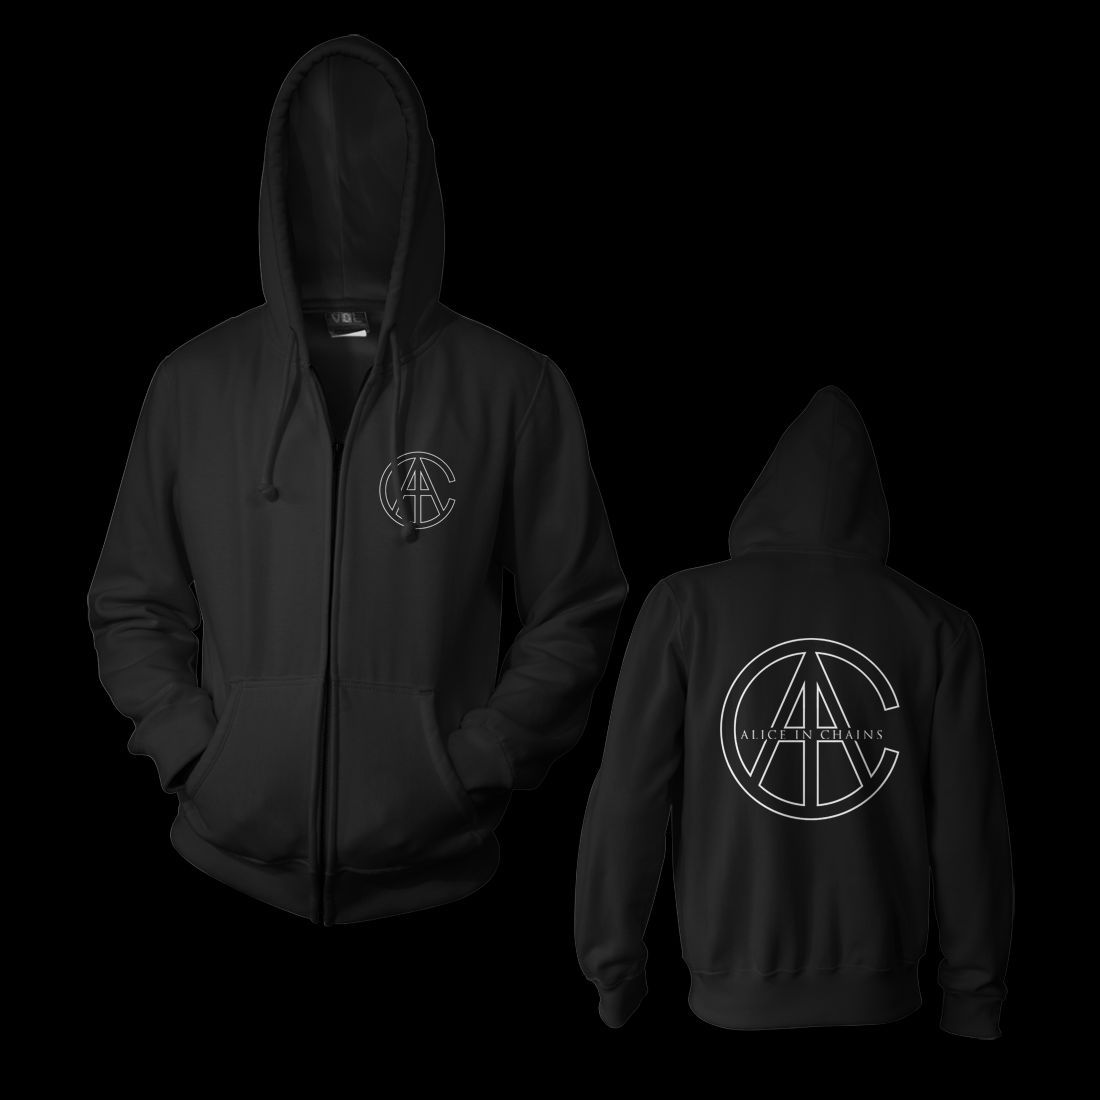 Alice in chains hoodie